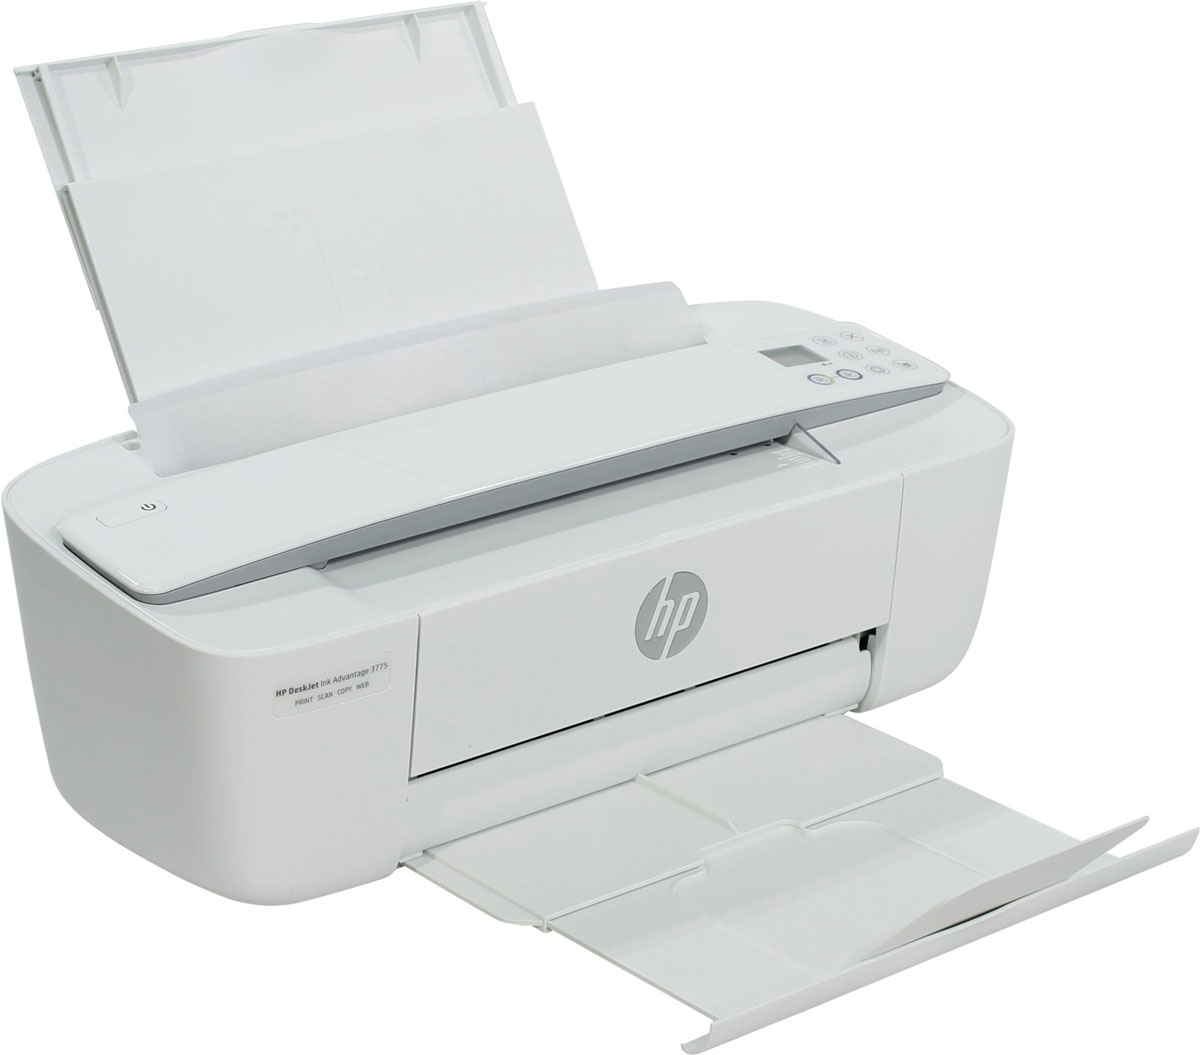 HP Deskjet Ink Advantage 3775 (T8W42C) МФУ мфу hp deskjet 2130 all in one k7n77c